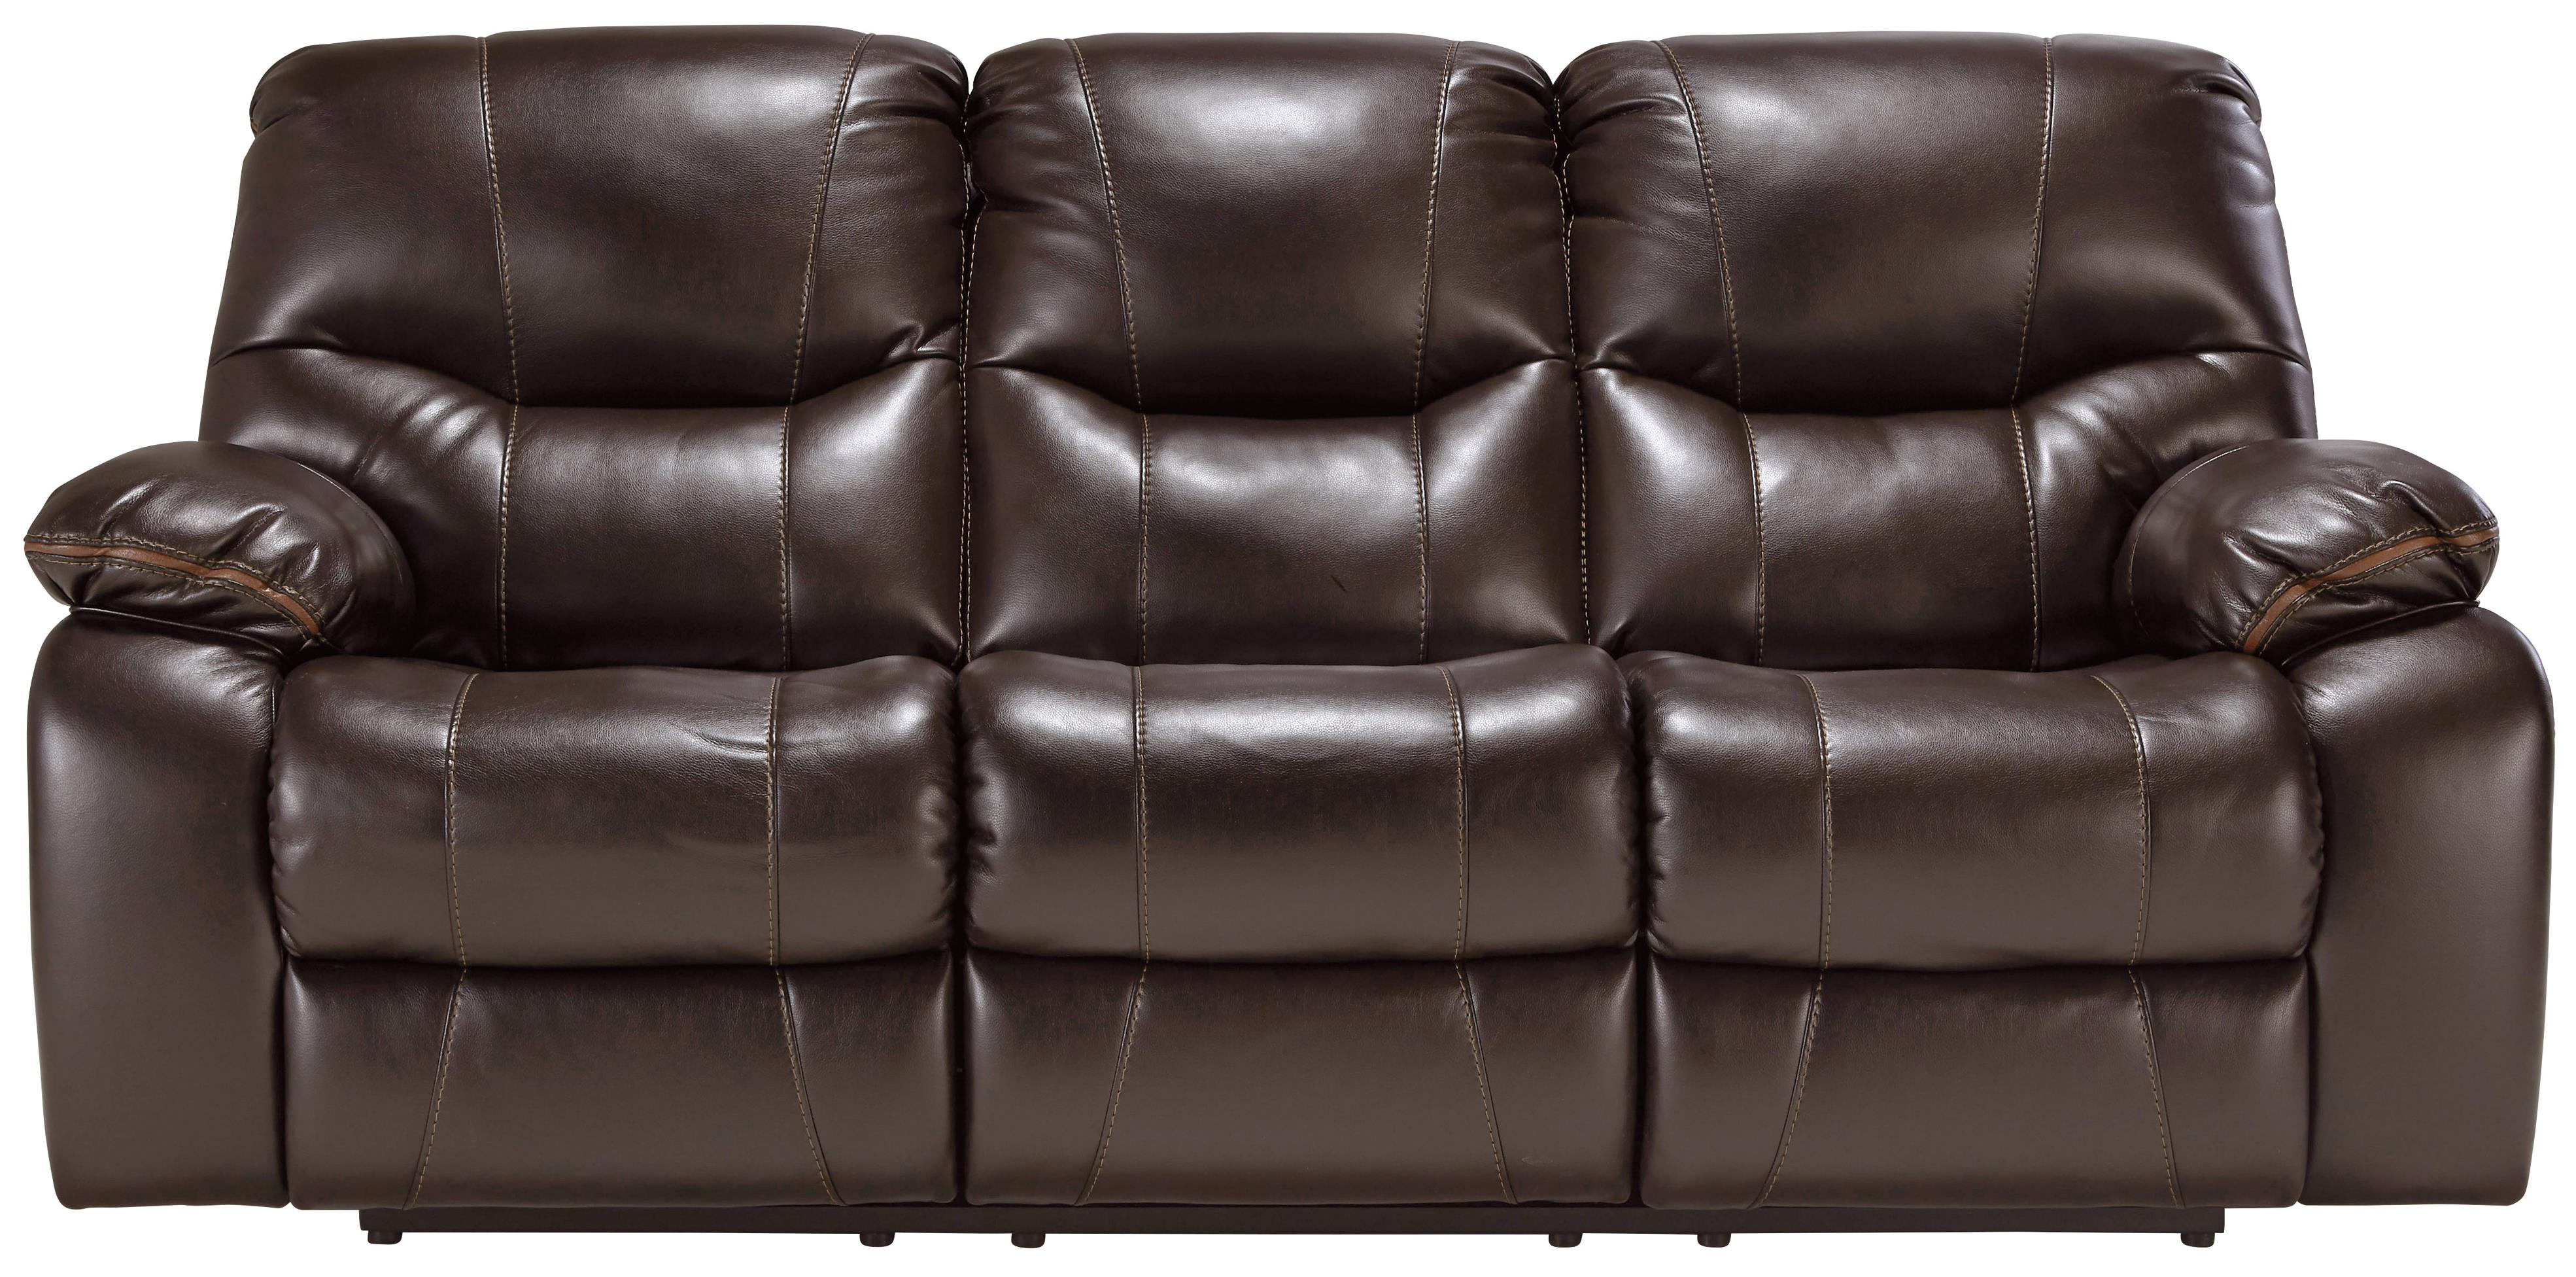 Signature Design by Ashley Pranas Reclining Sofa - Item Number: 4790088